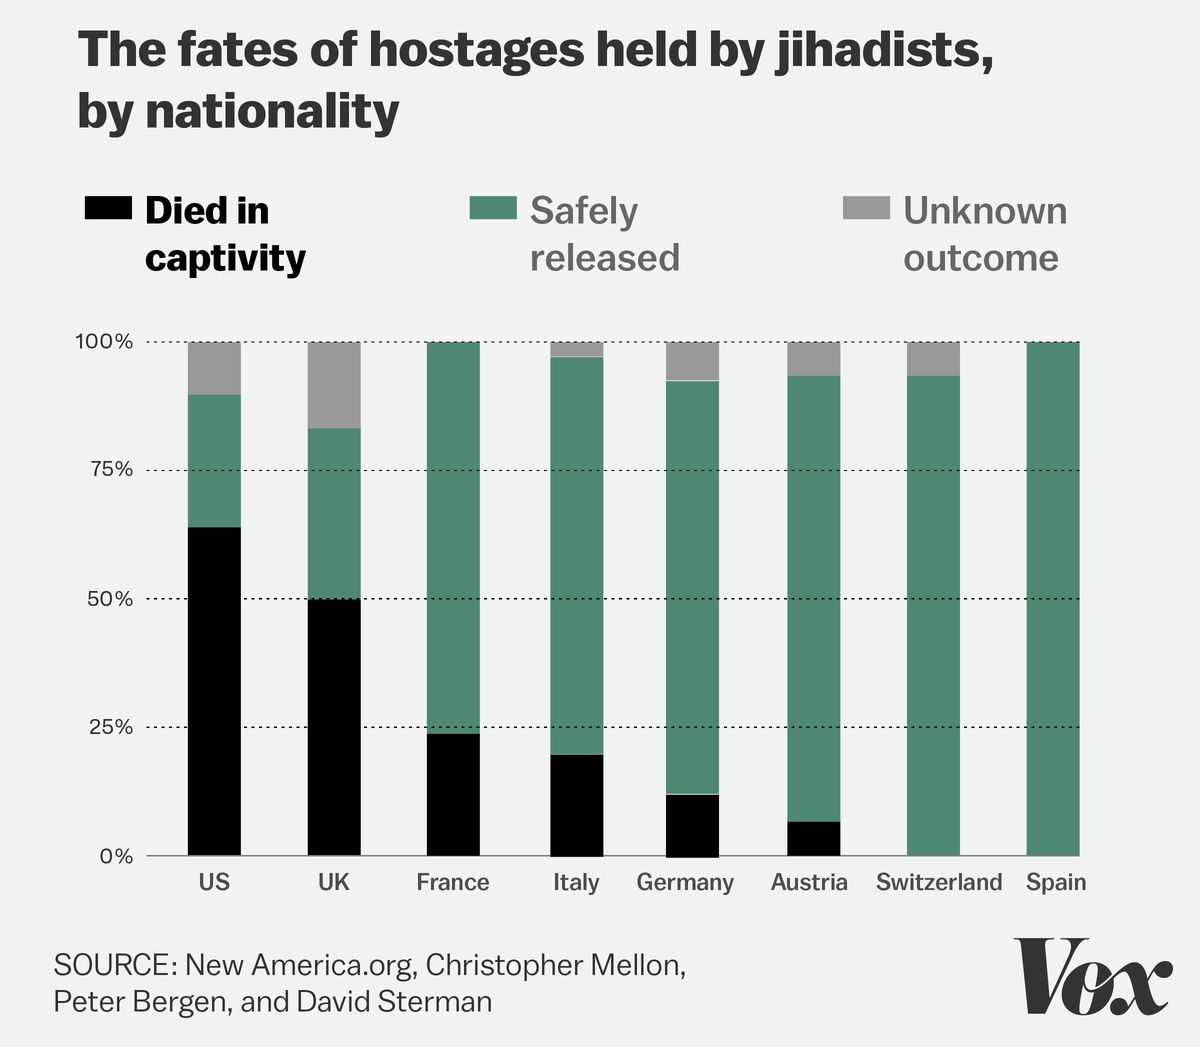 The fates of hostages held by jihadists, by nationality